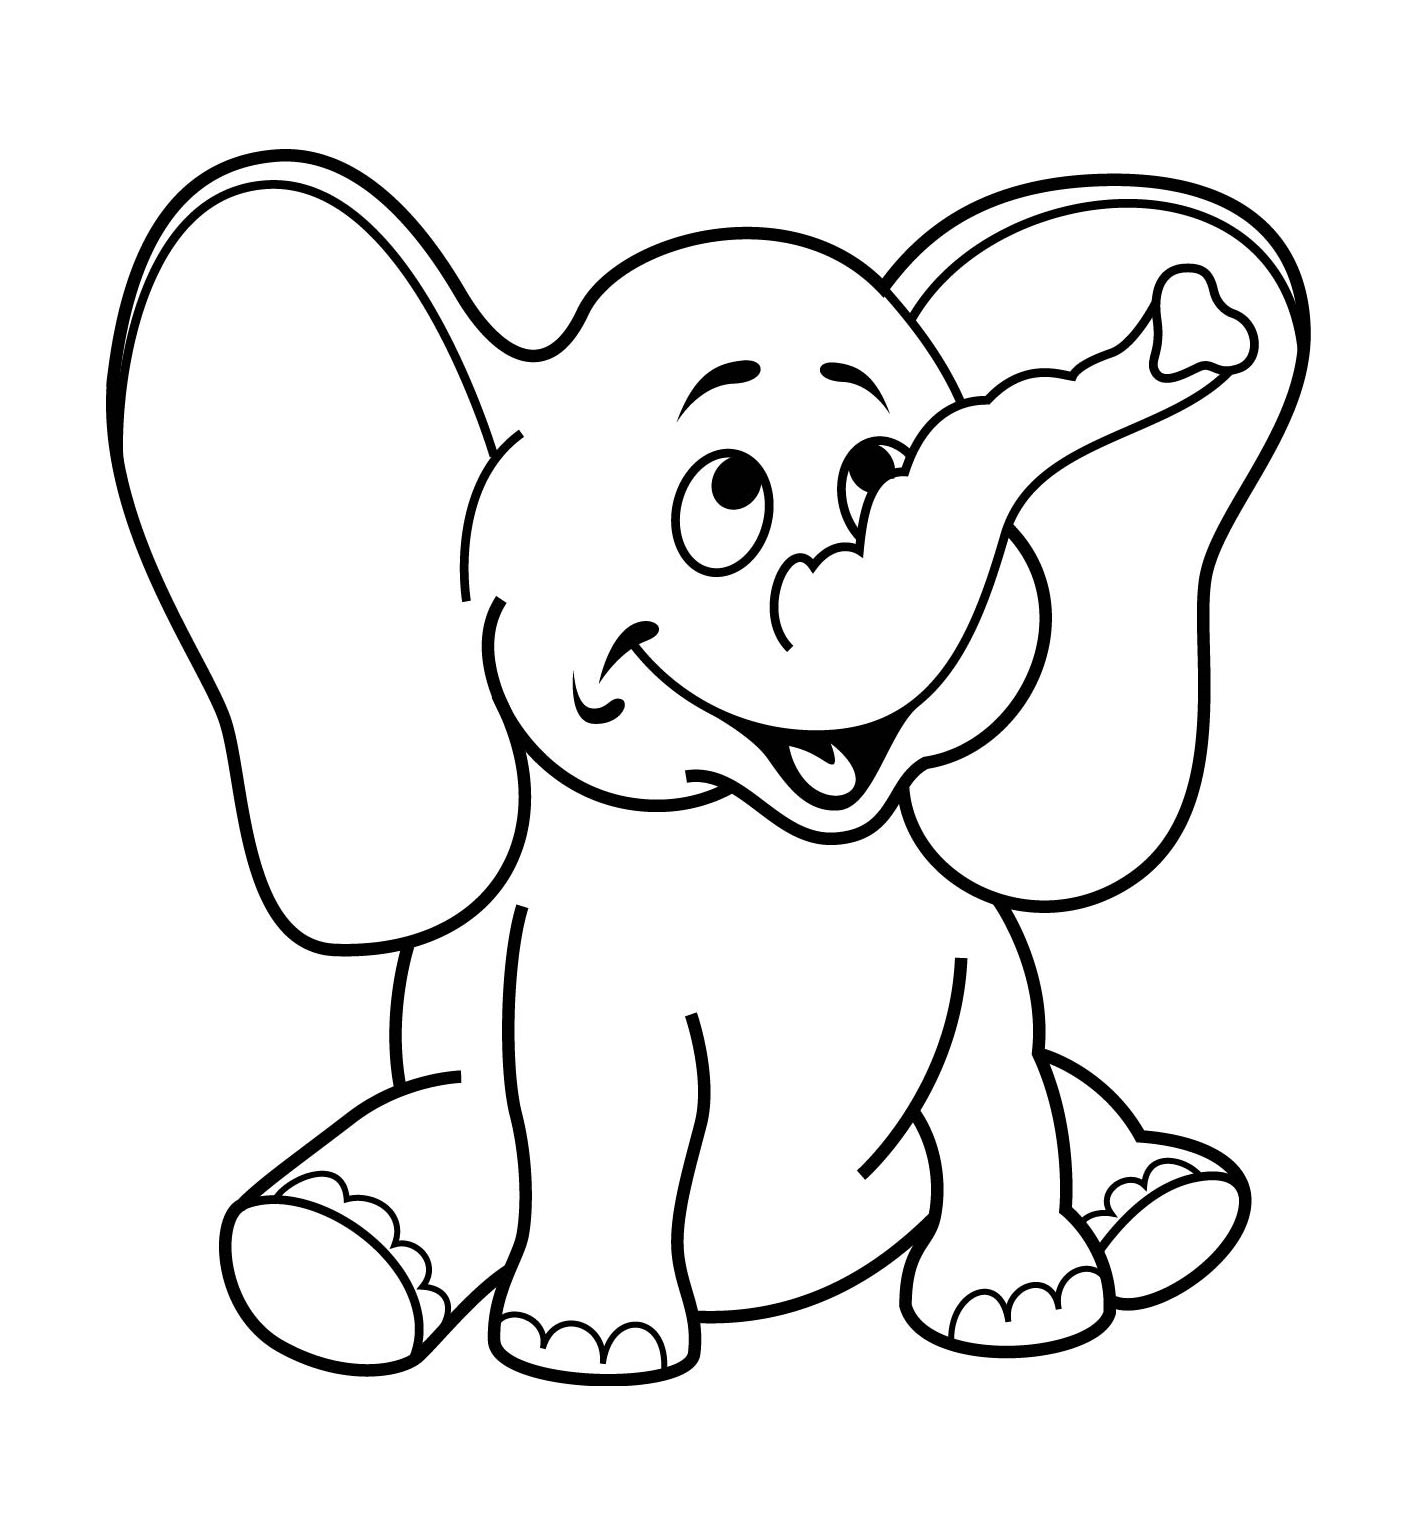 Coloring Pages For Girls: Coloring Pages For 3-4 Year Old Girls, 3,4 Years, Nursery